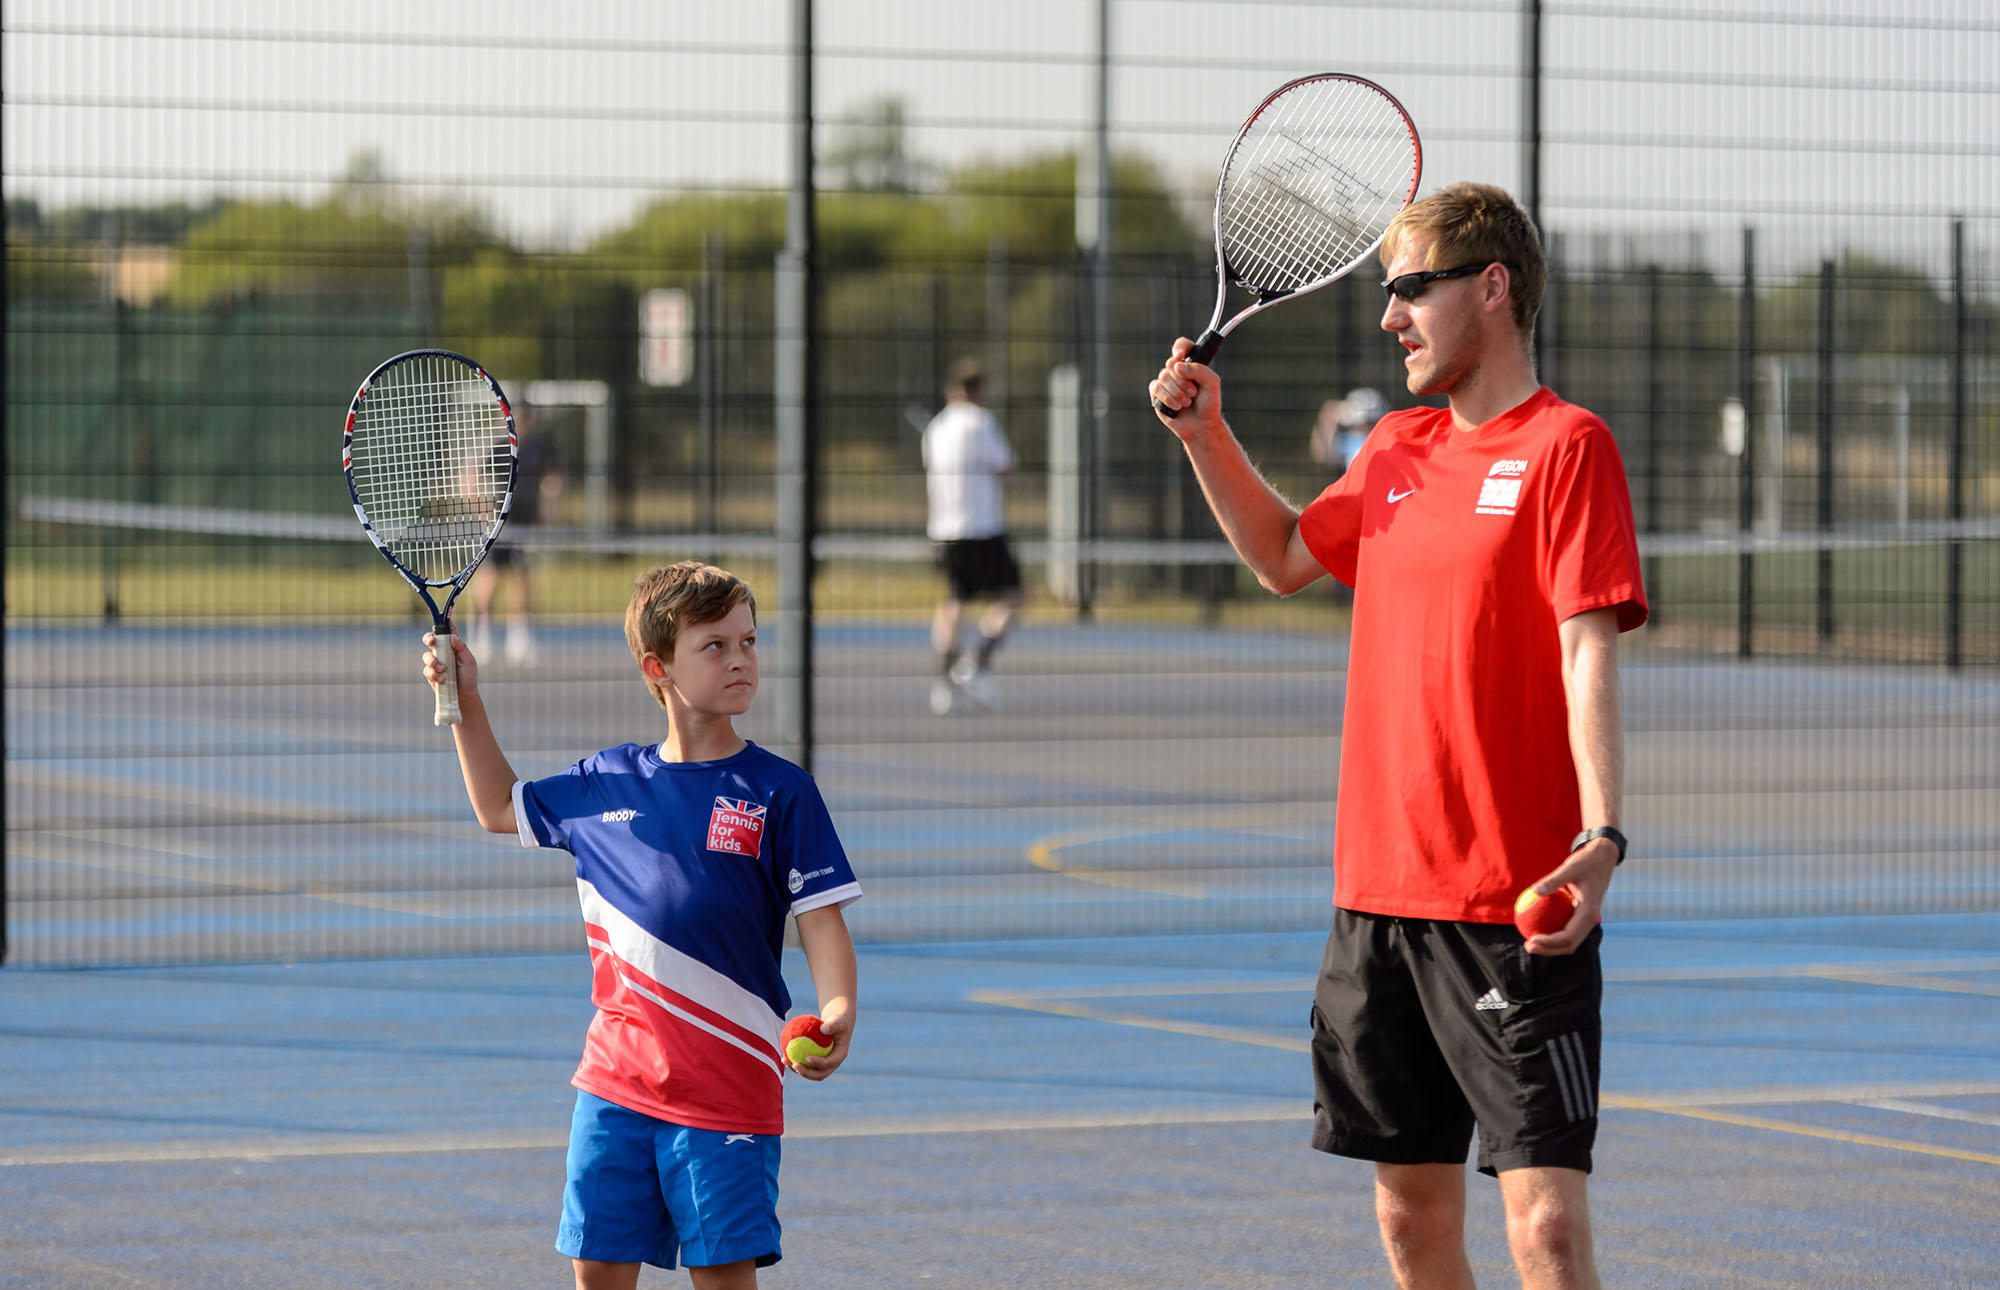 A coach demonstrates a serve to a boy at a tennis coaching session